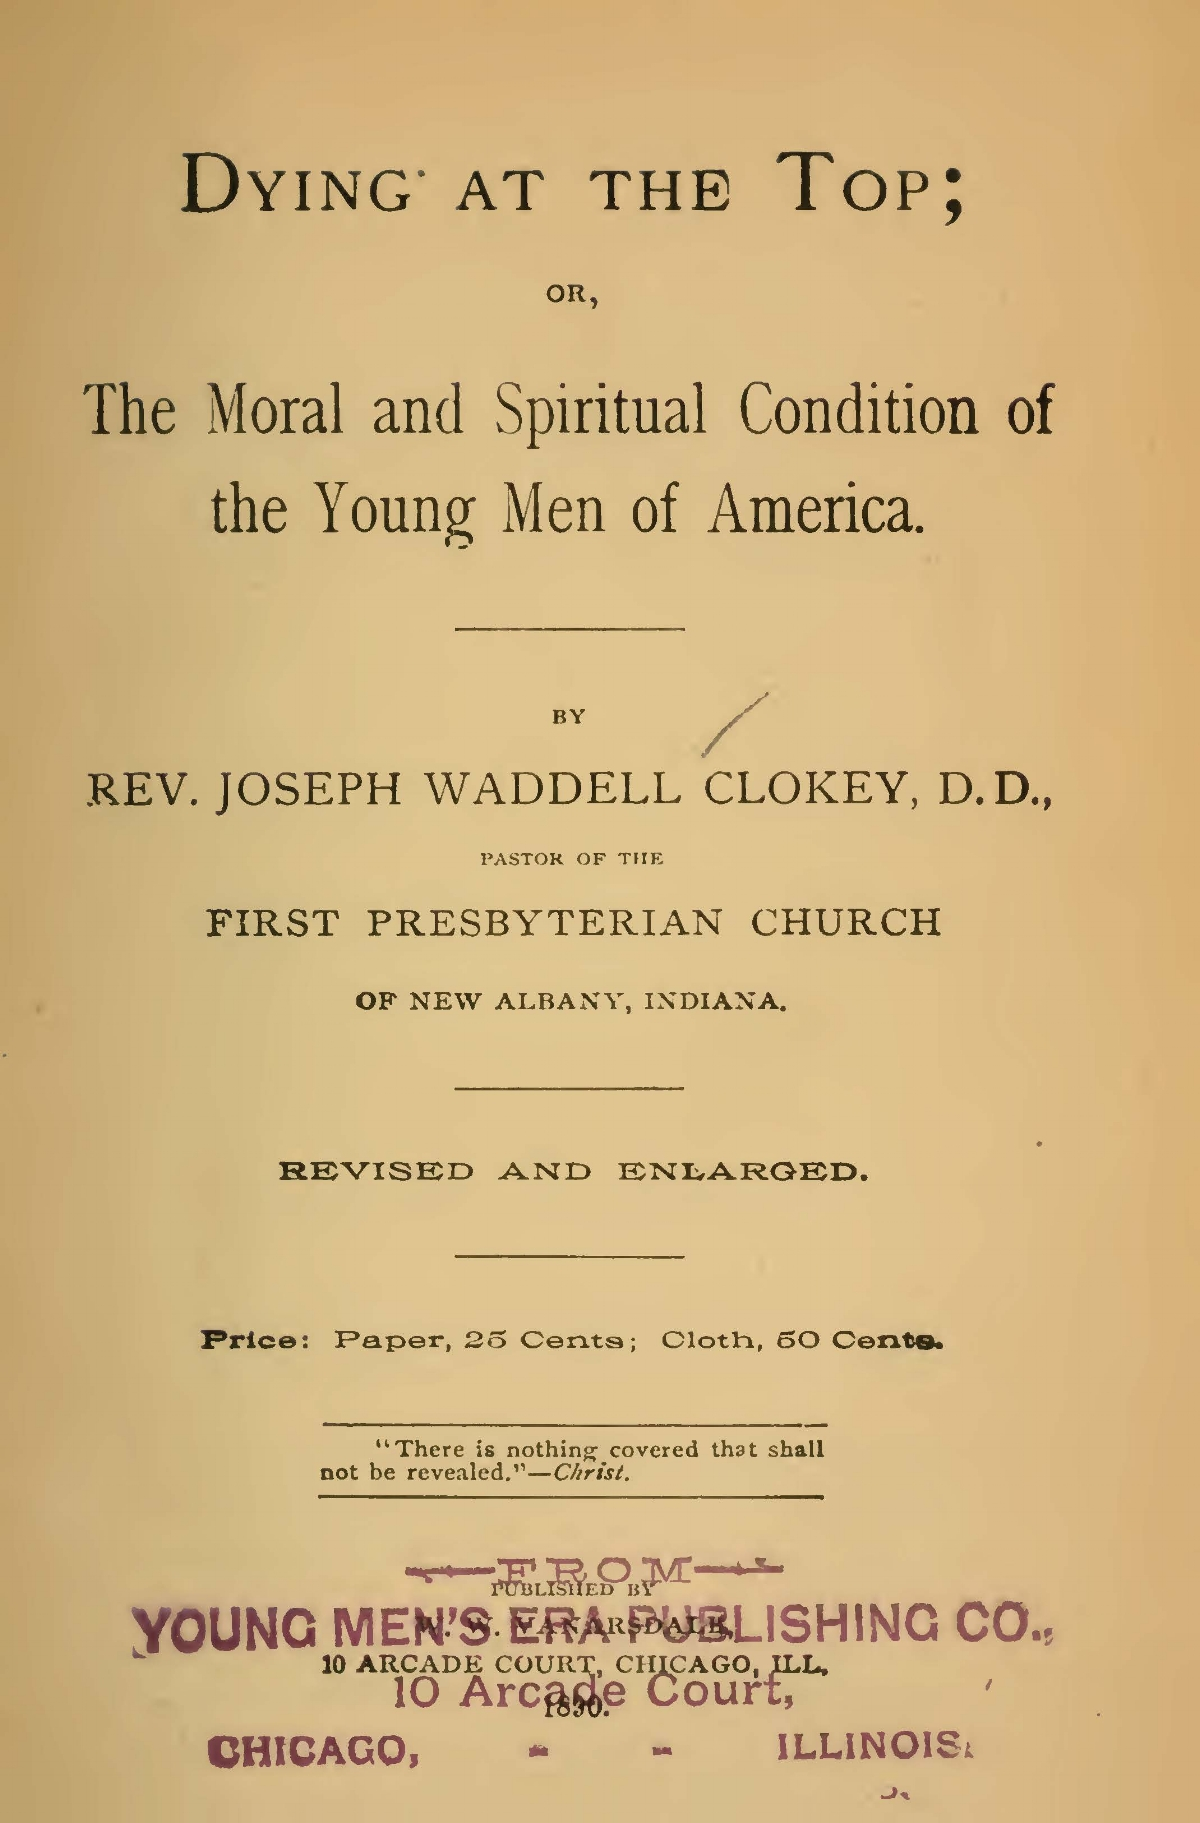 Clokey, Sr., Joseph Waddell, Dying at the Top Title Page.jpg